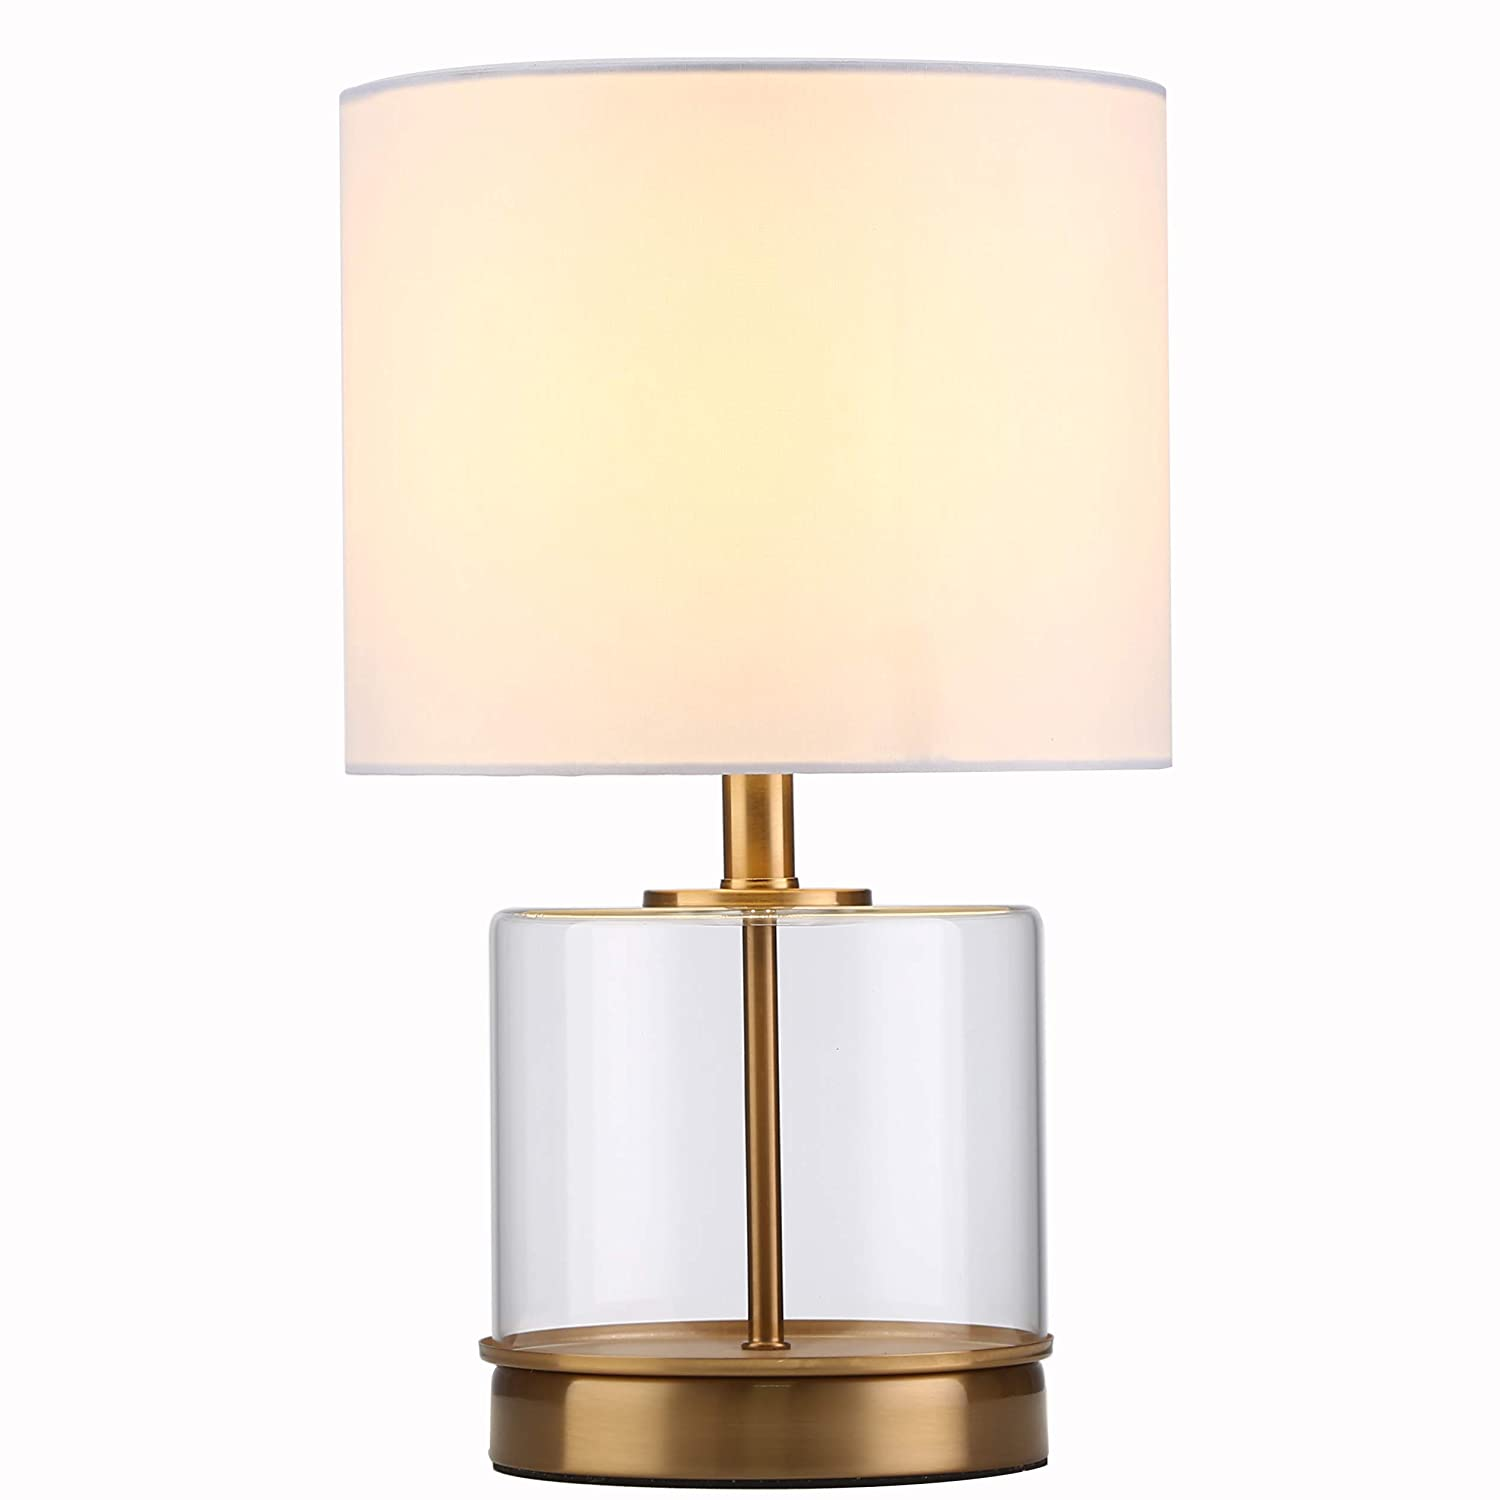 Tayanuc Contemporary Bedside Accent Glass Table Lamp with Gold Base, Table  Lamps for Bedroom Living Room